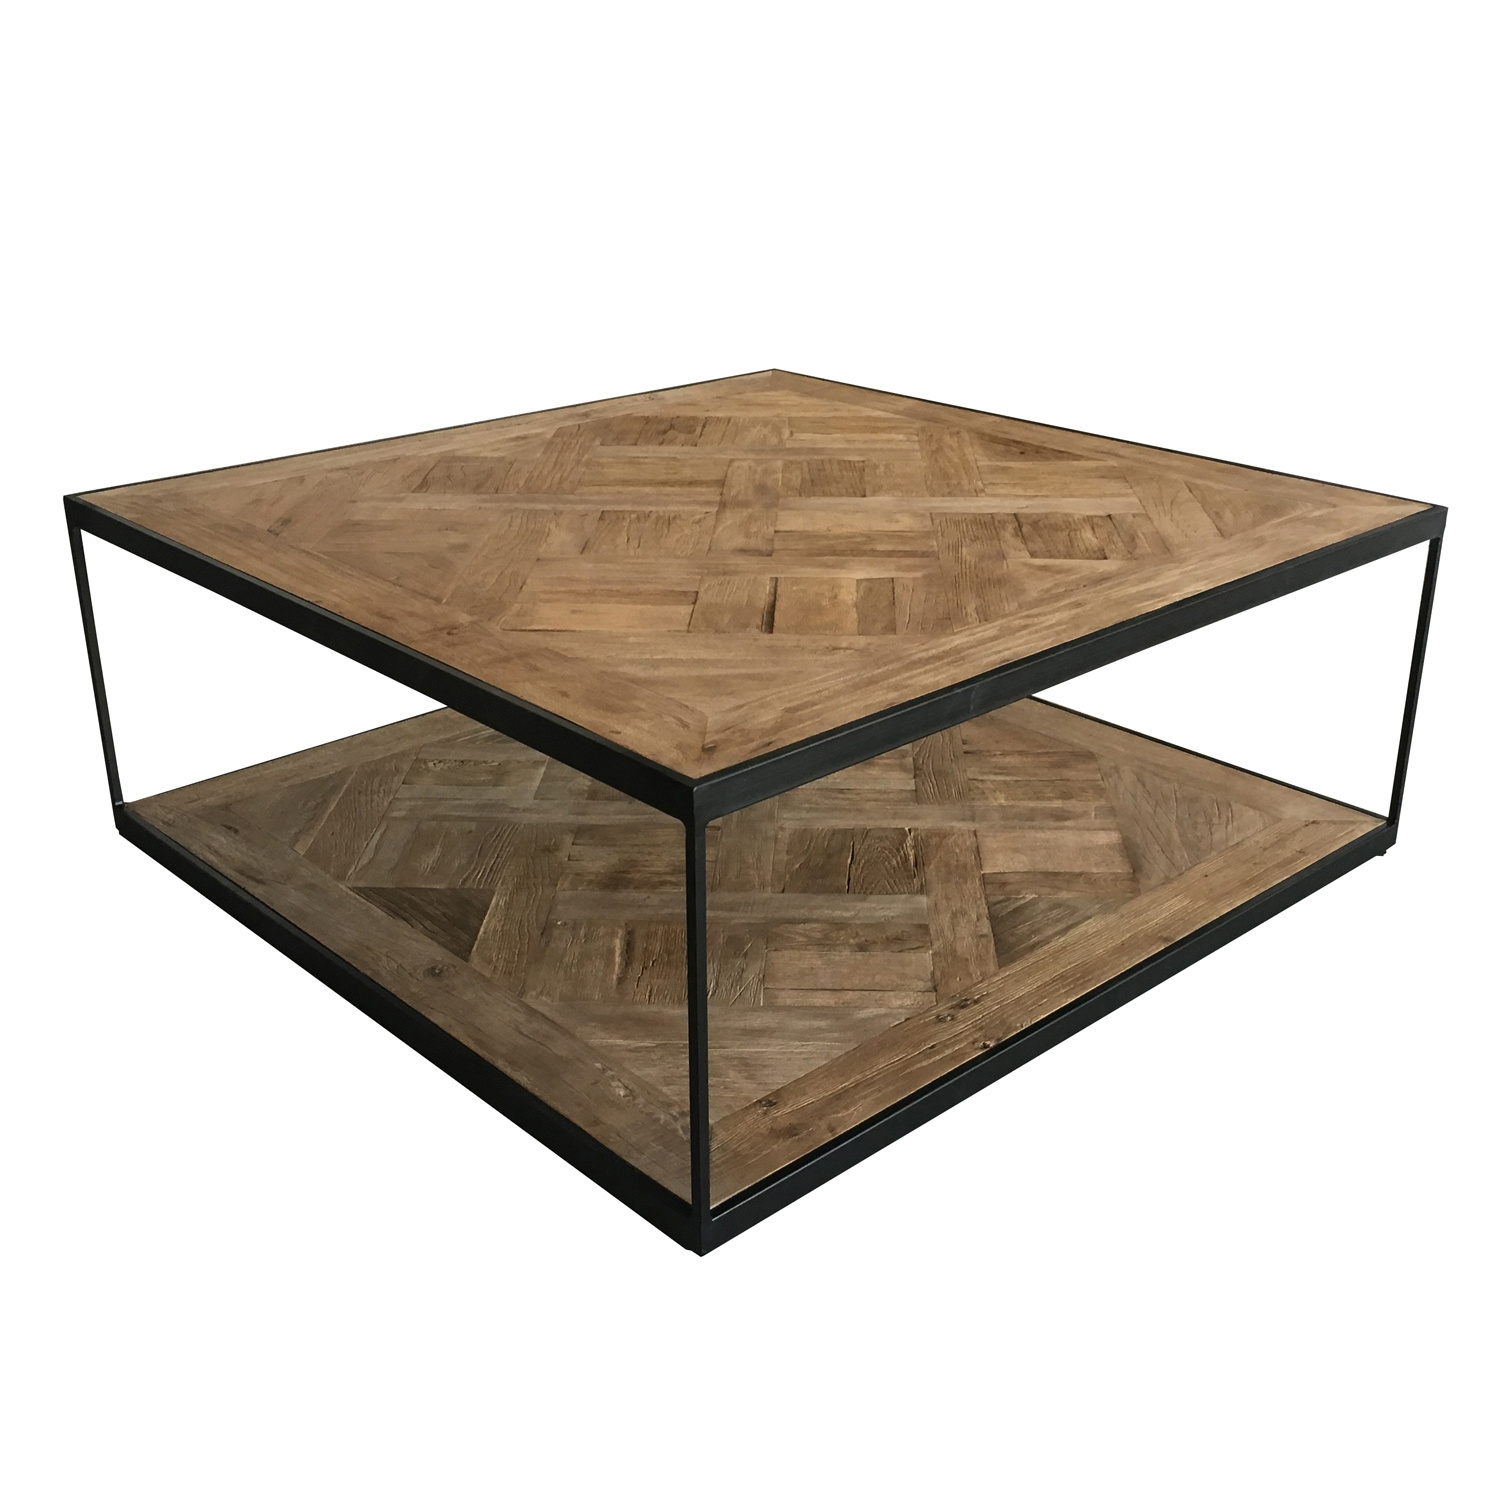 China Vintage Industrial Square Metal Steel Iron Frame Wood Coffee Table China Industrial Square Coffee Table Industrial Wood Coffee Table